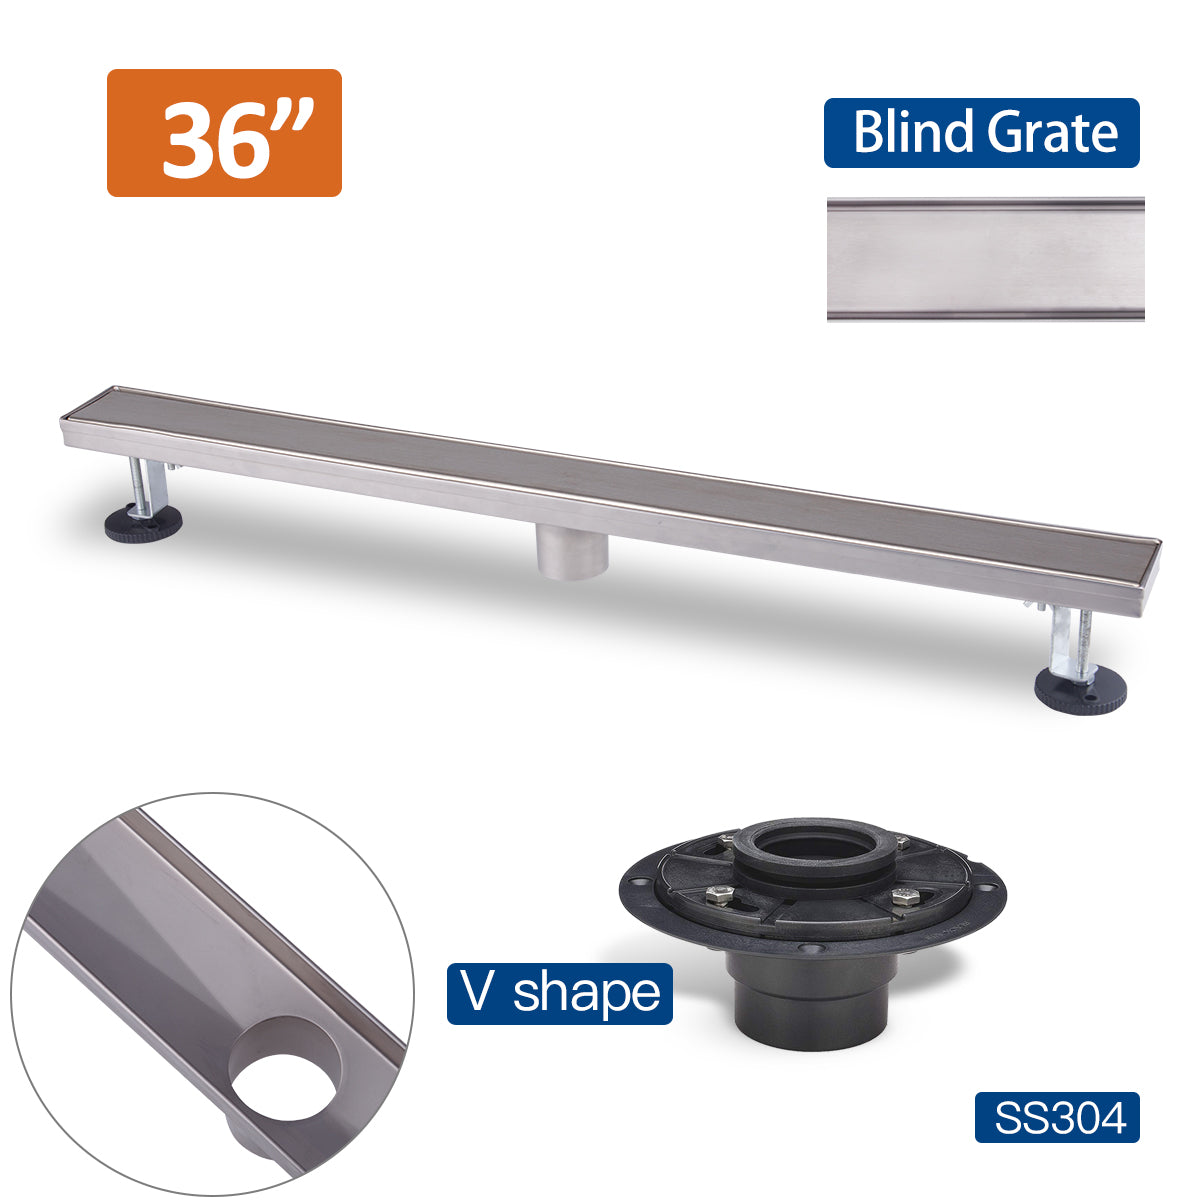 36 Inch Stainless Steel Linear Floor Drain Blind Style and Drain Base with Rubber Gasket